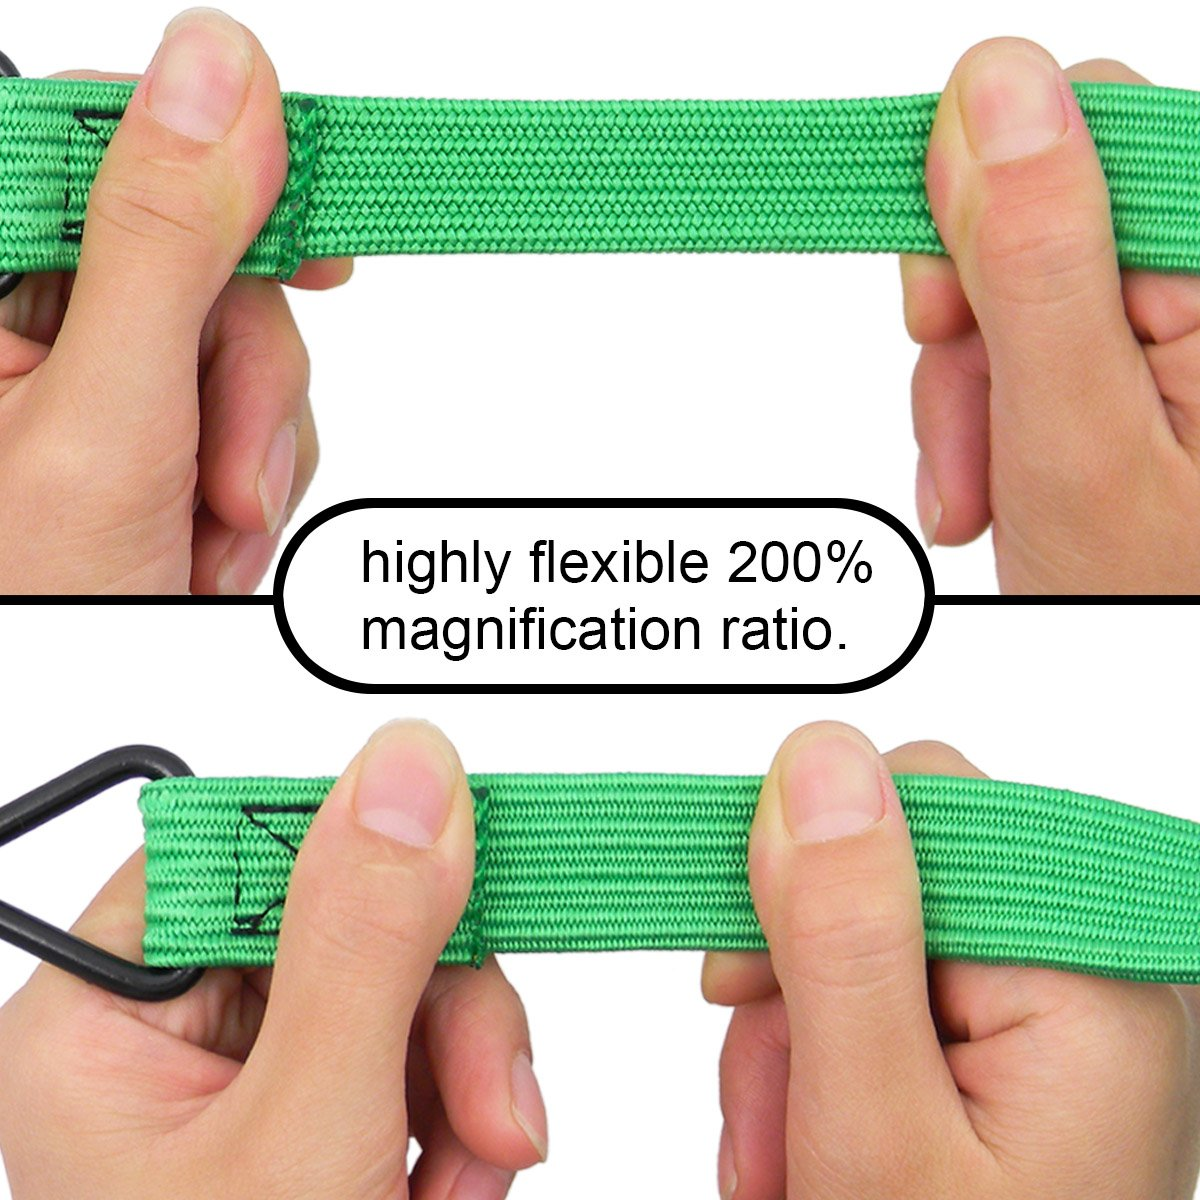 Shells Green Highly Stretchy Compact Dual Safety Hook Clips 72 Inches Bike Motorbike Luggage Cord Rope Bungee Rope Shells group